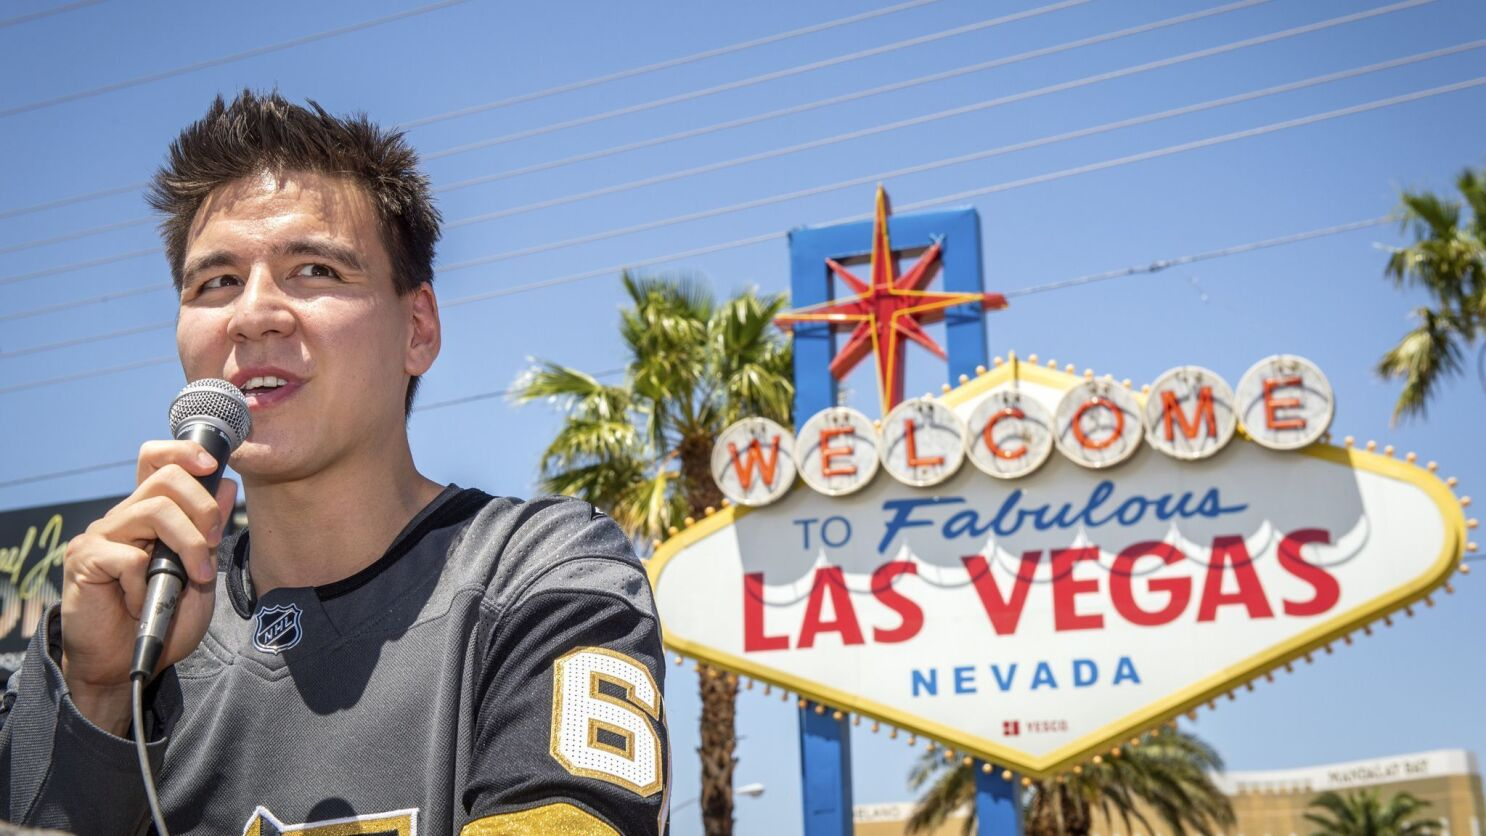 Must Reads Jeopardy Sensation James Holzhauer Is A Winning Hand For Las Vegas Los Angeles Times